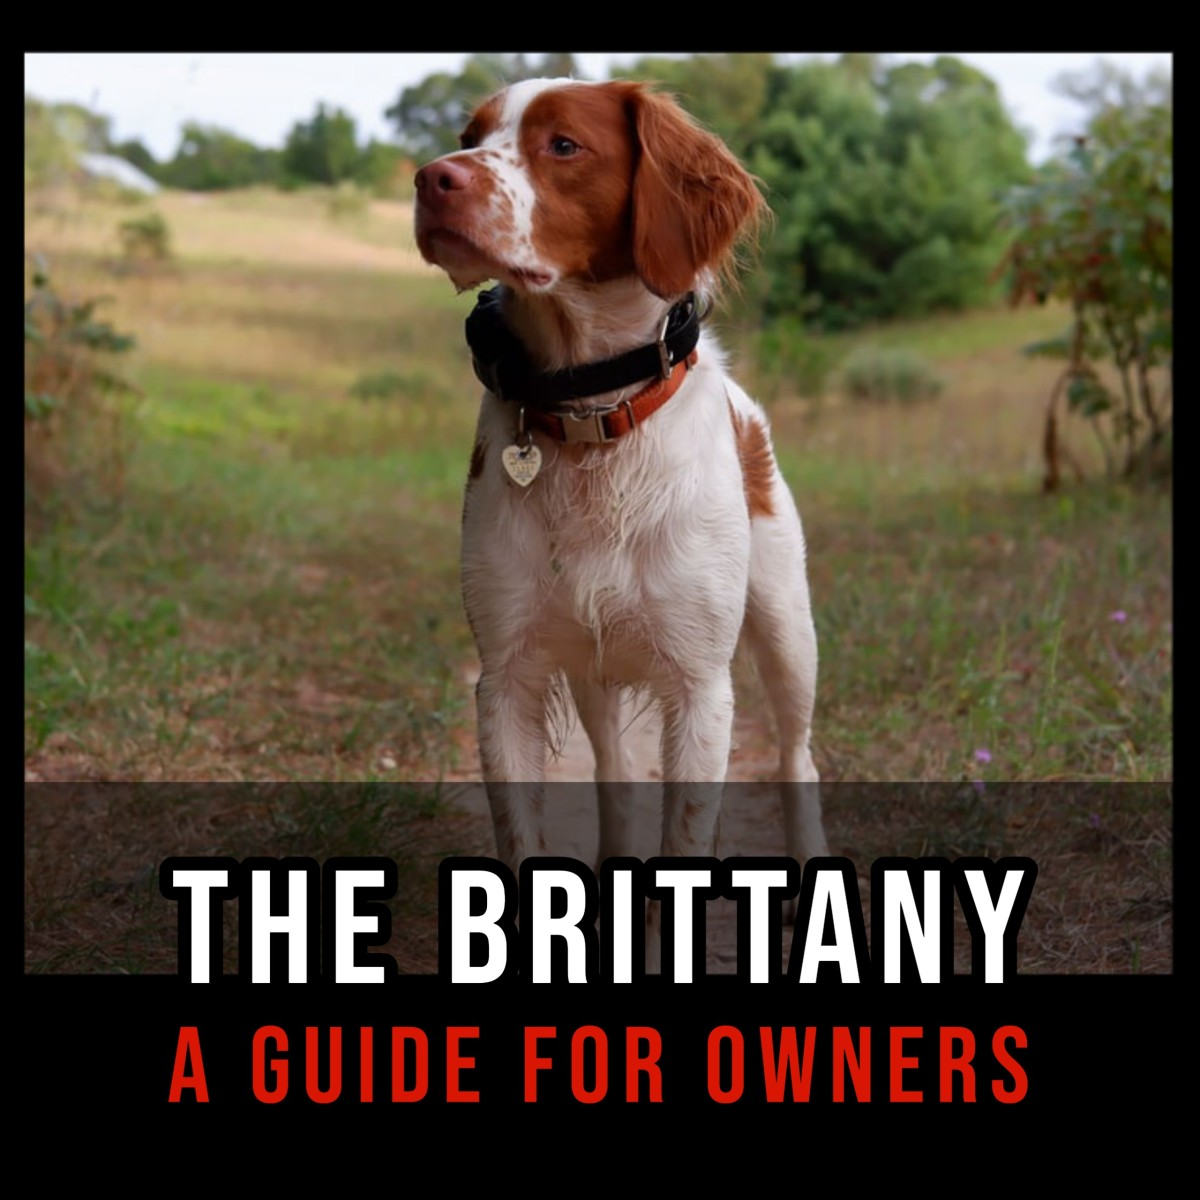 The Brittany: A Guide for Owners